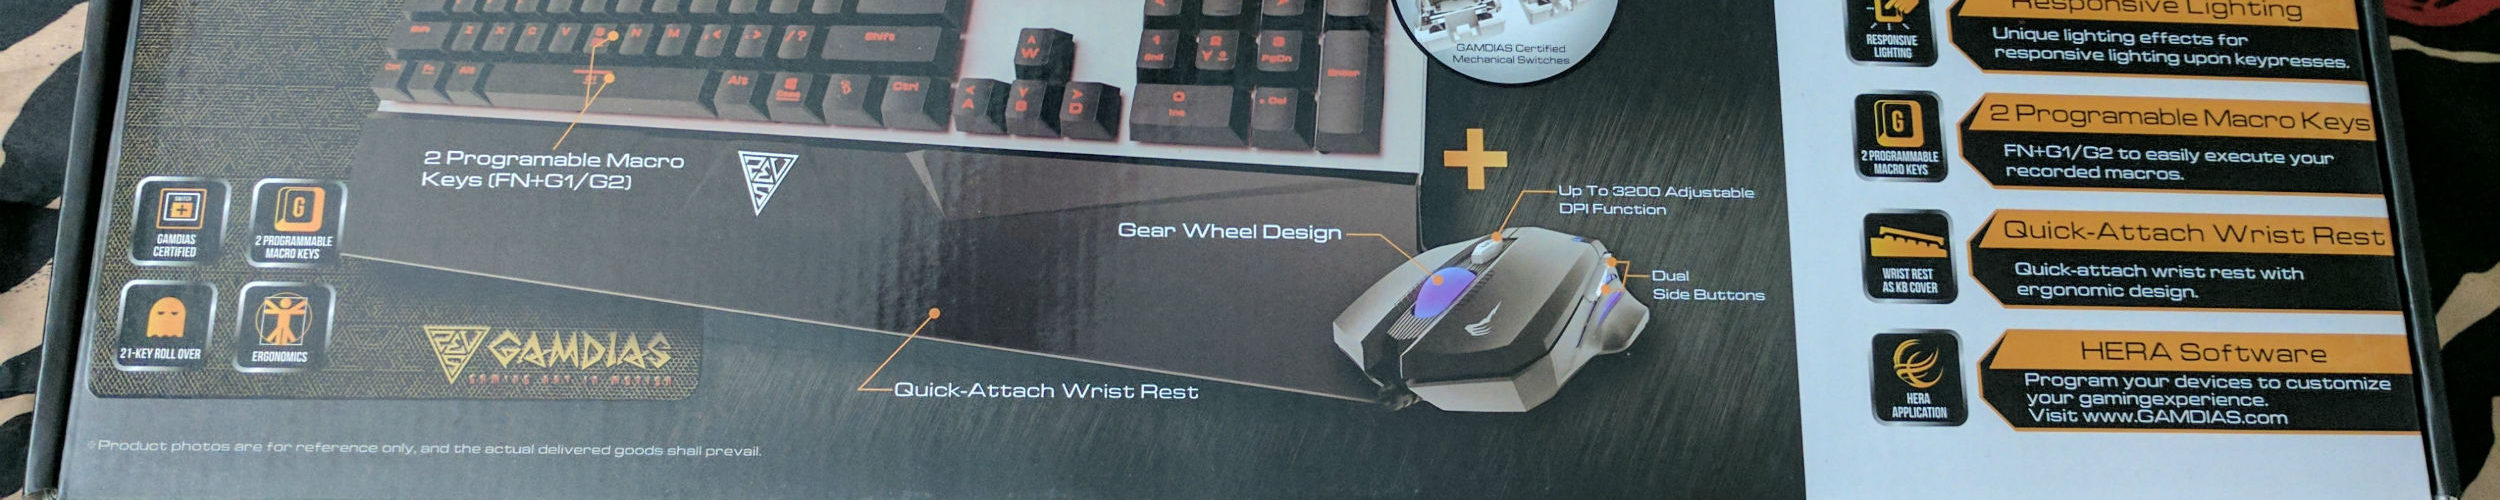 Review: Gamdias Hermes E1 gaming keyboard and mouse combo